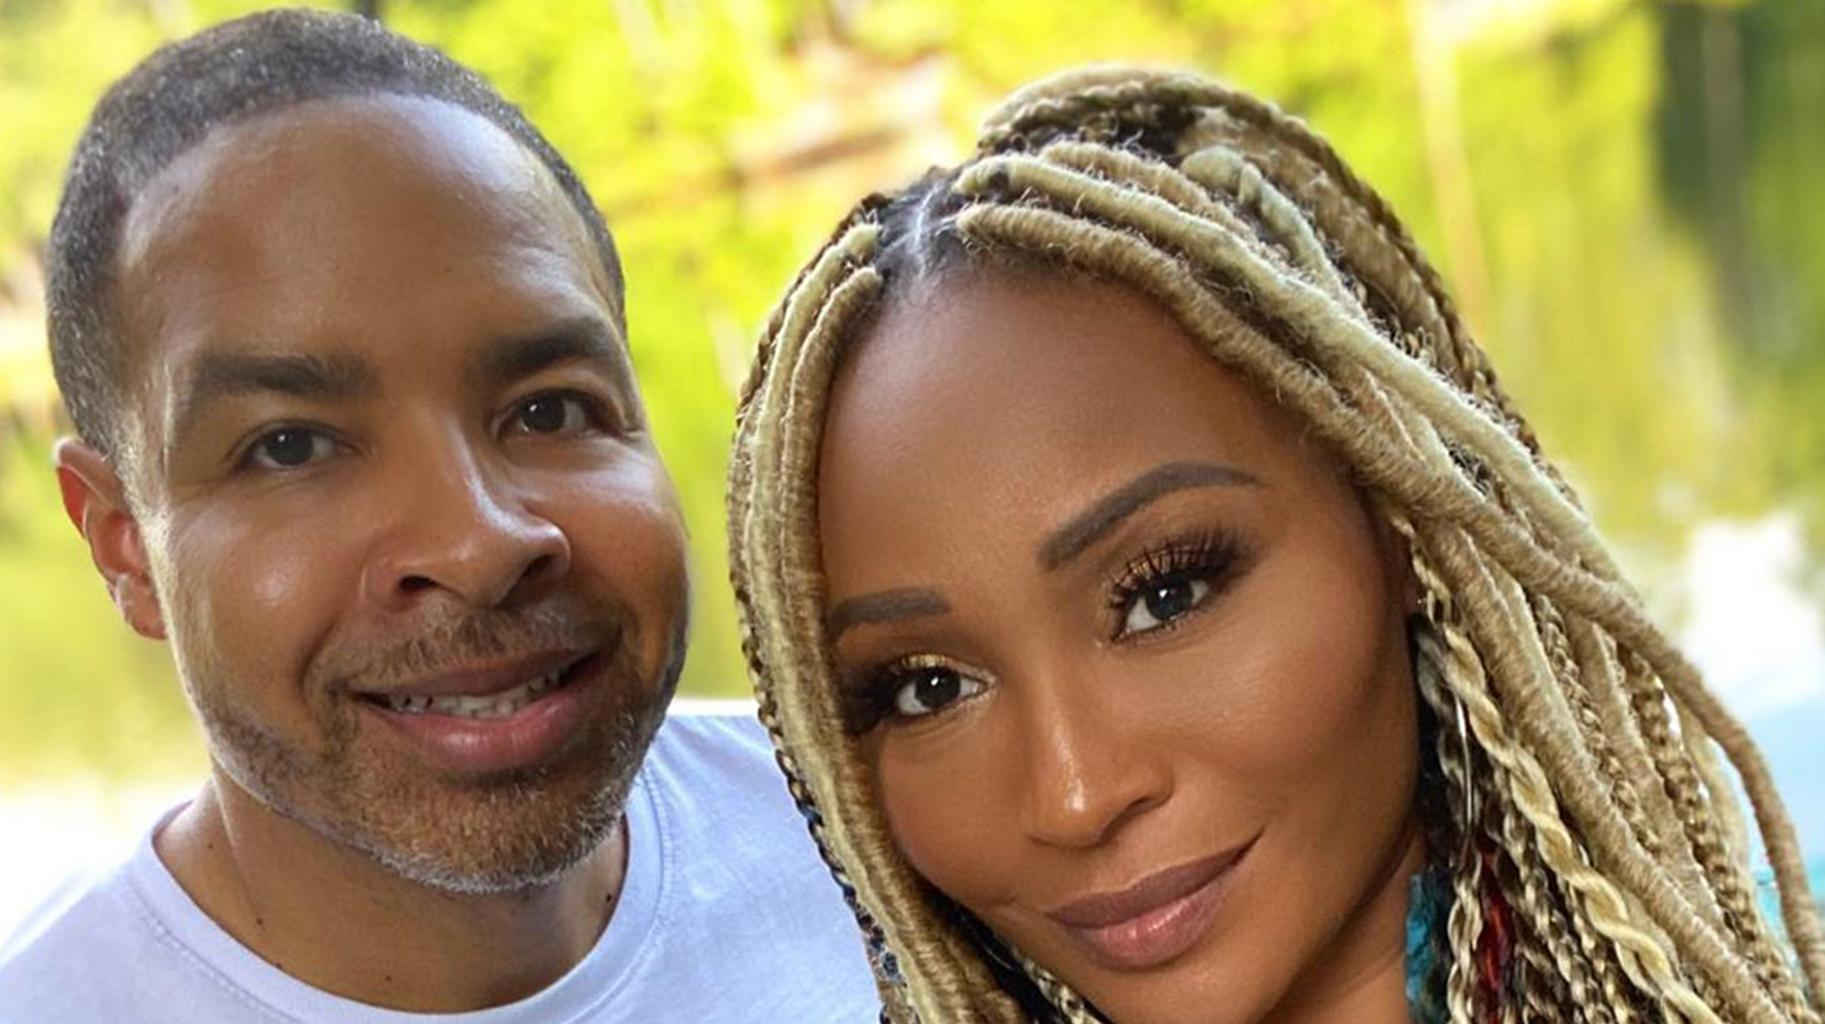 Cynthia Bailey Looks Gorgeous In This White Dress Together With Mike Hill - See The Photos